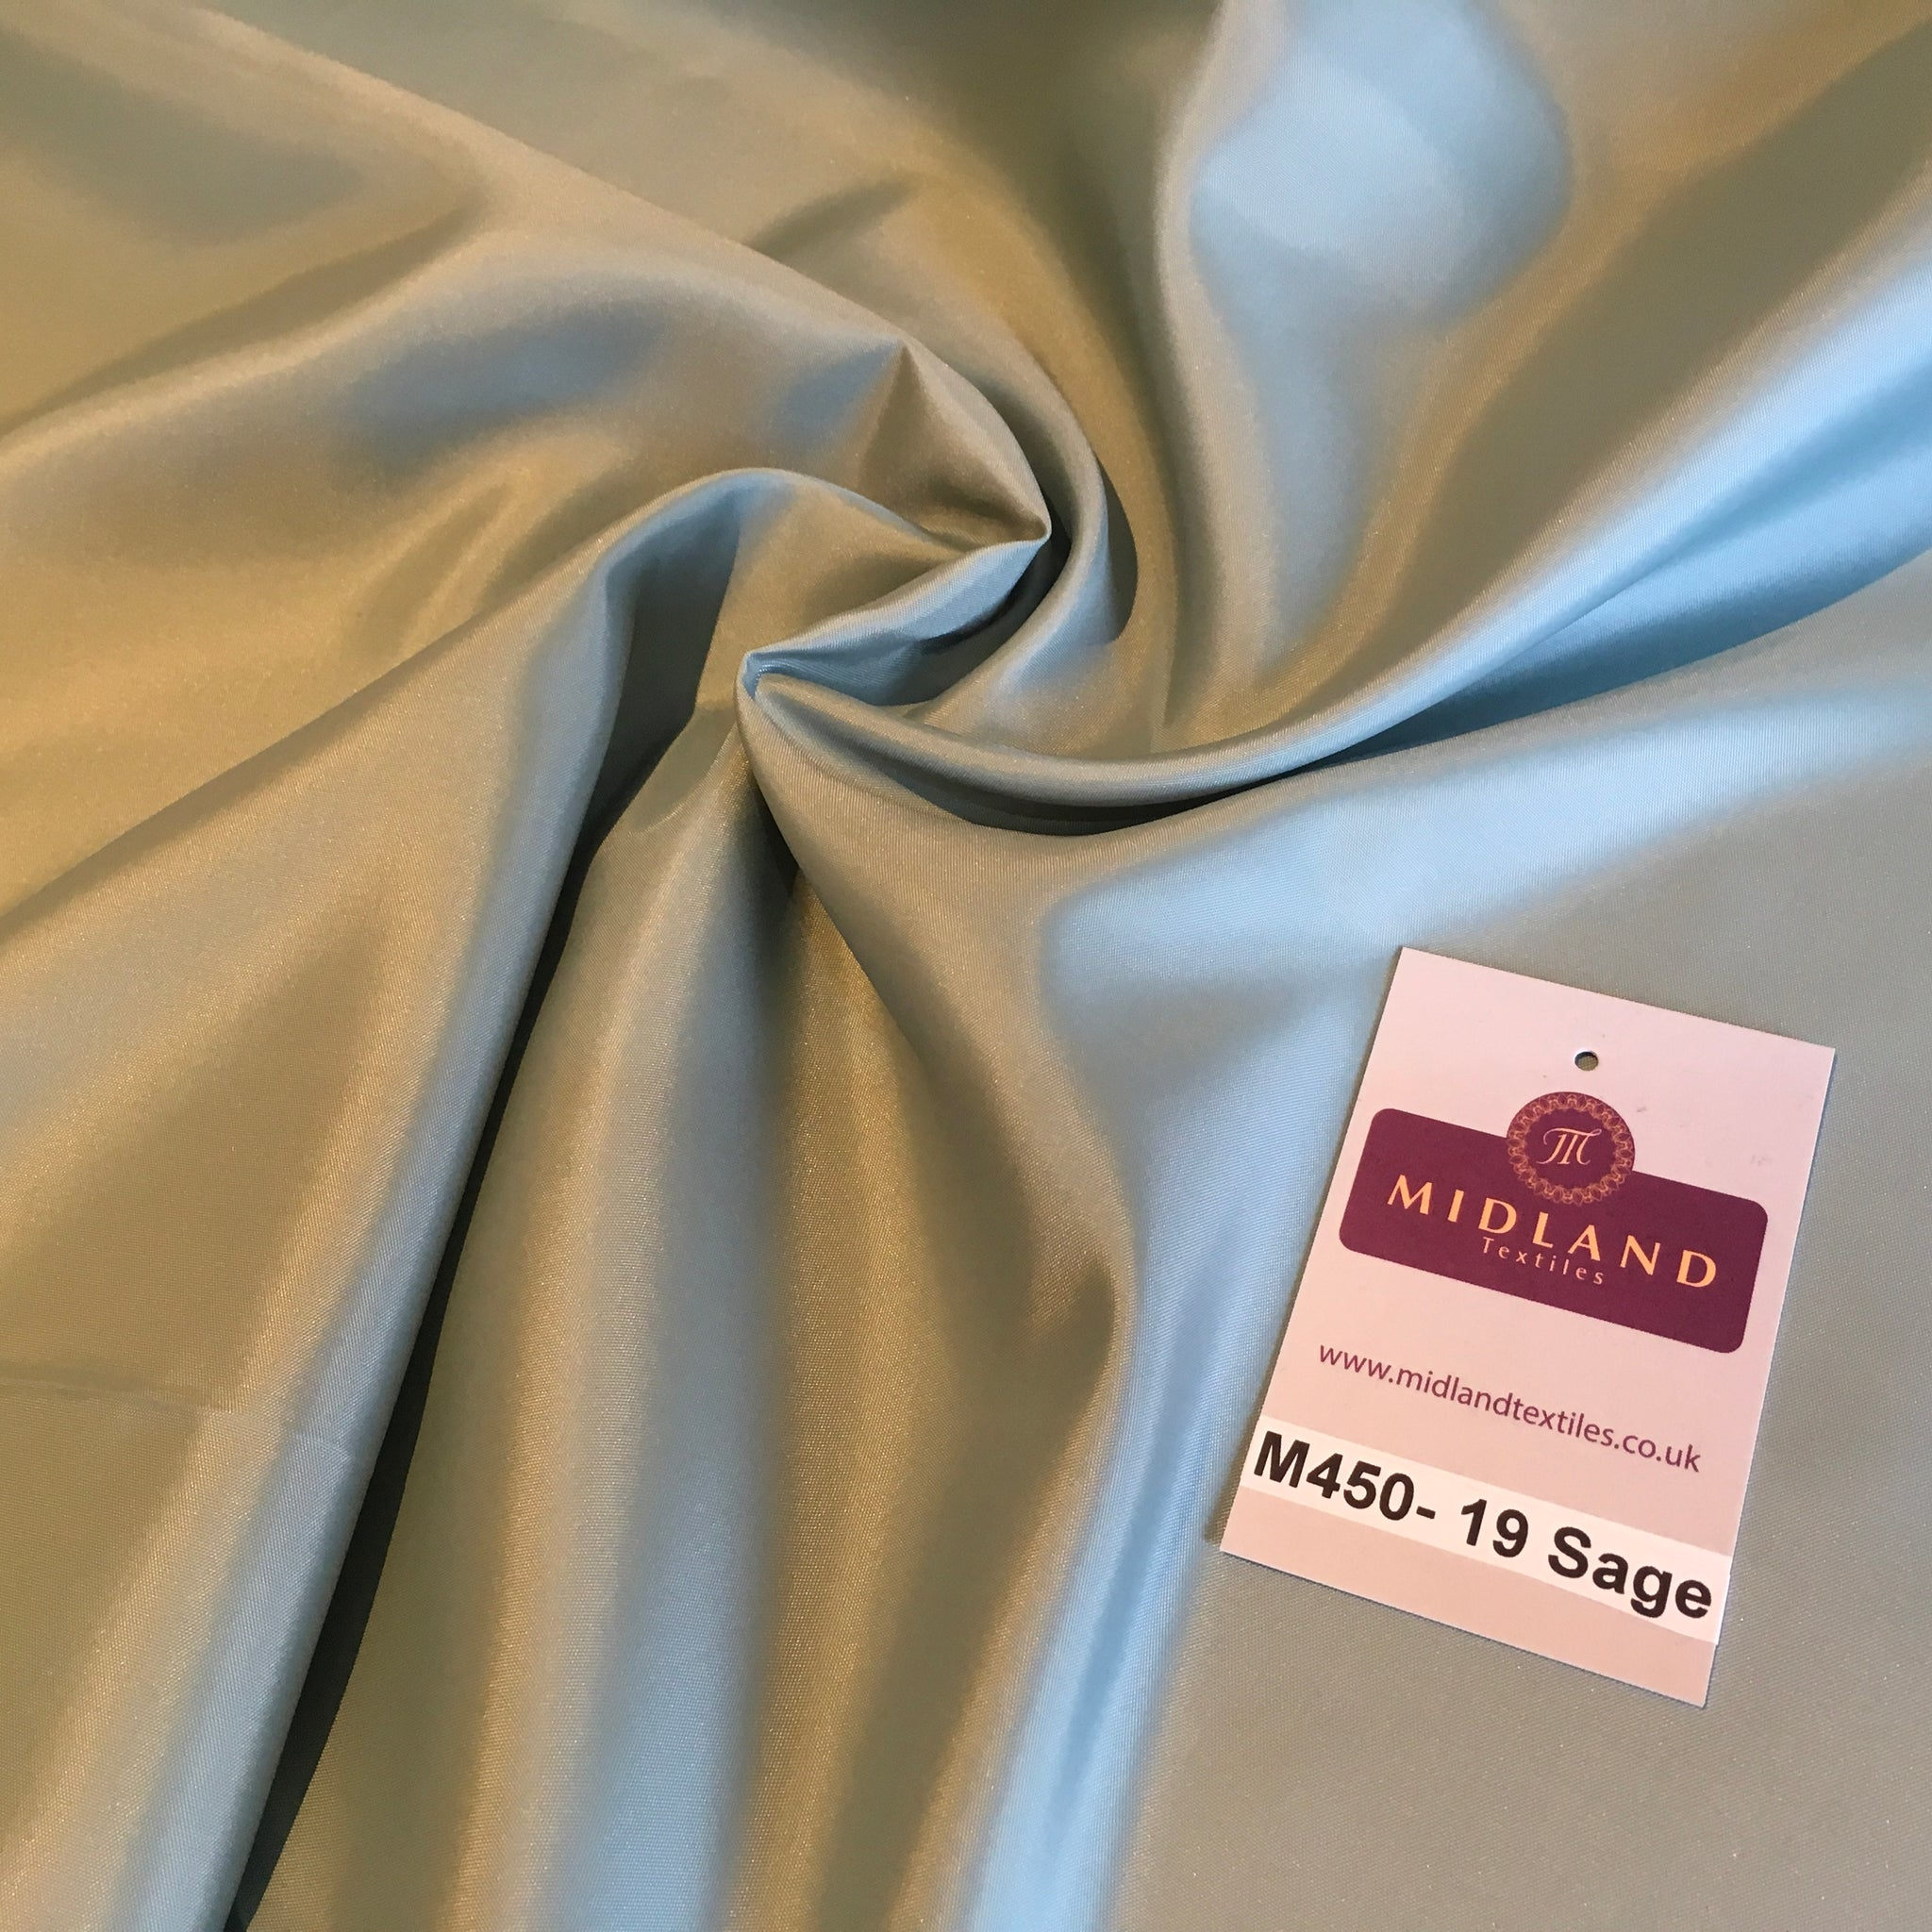 HIGH QUALITY ANTI STATIC DRESS LINING FABRIC 100% POLYESTER 158CM WIDE M450 MTEX